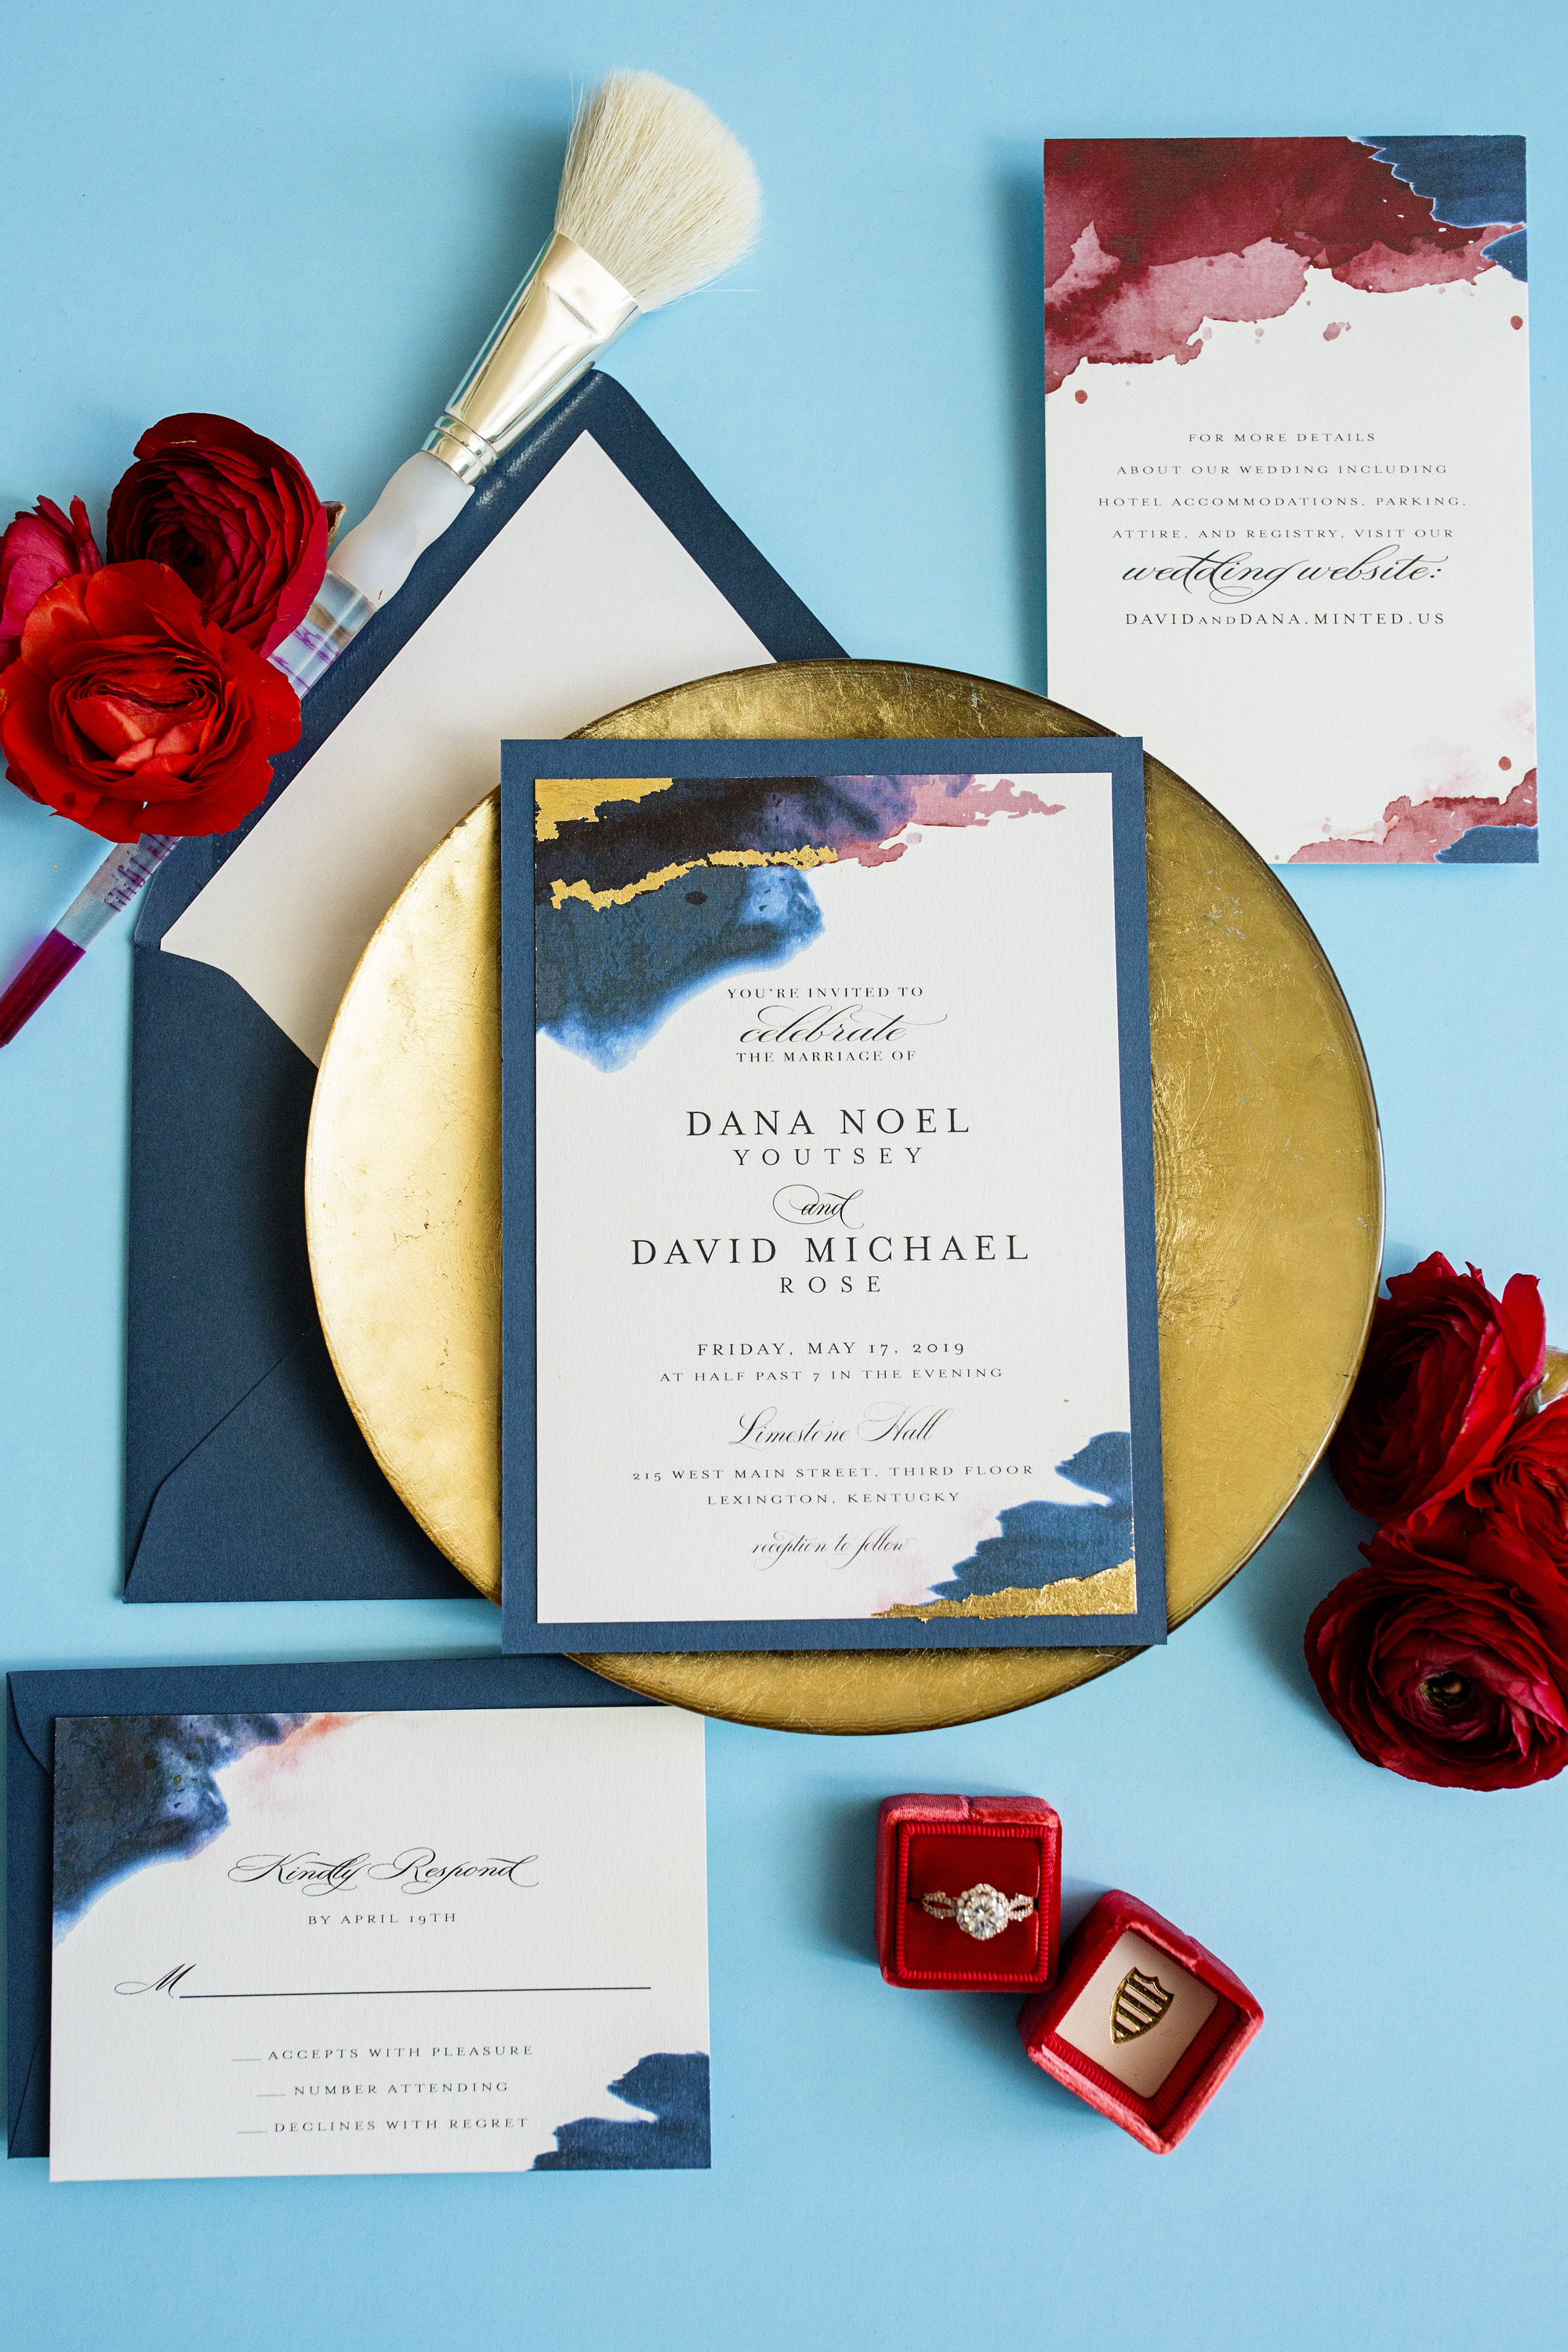 Seriously_Sabrina_Photography_Commercial_Simply_Done_Invites_2019_March_003